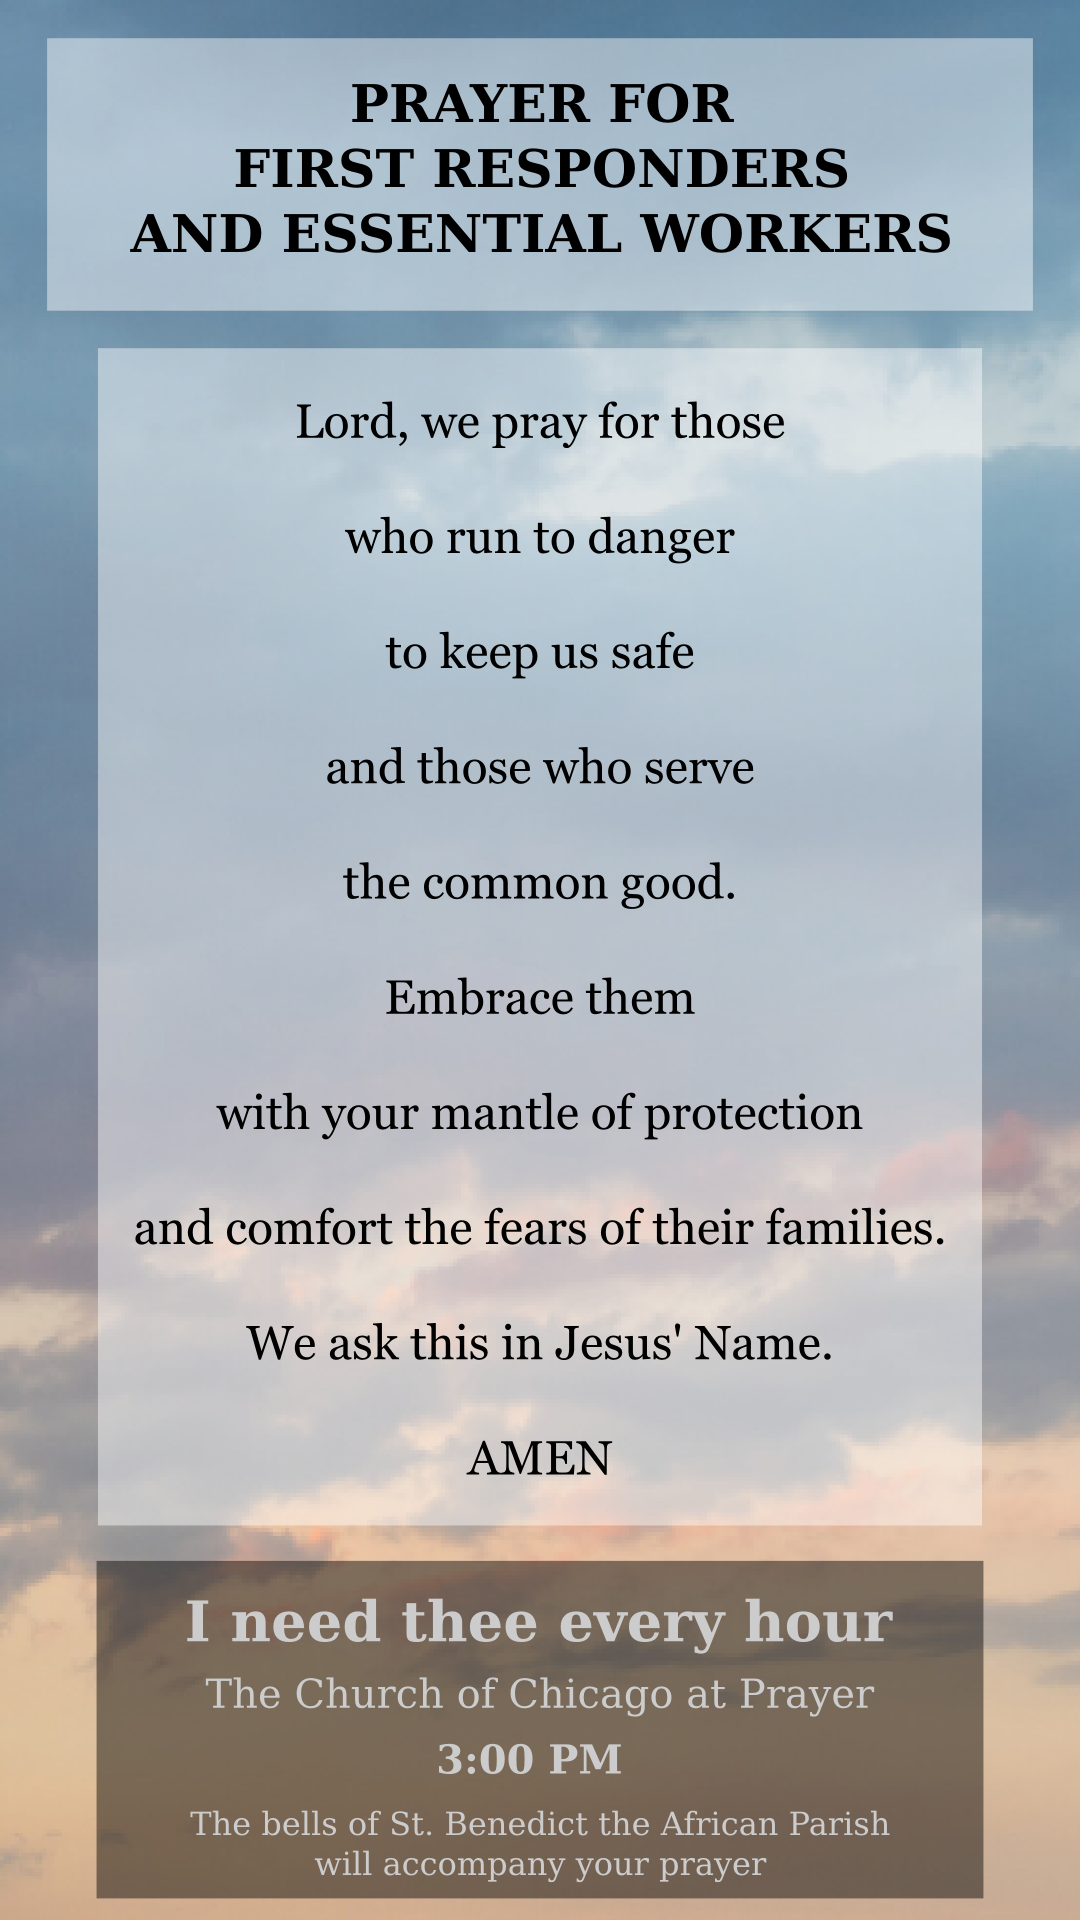 Prayer card for first responders and essential workers